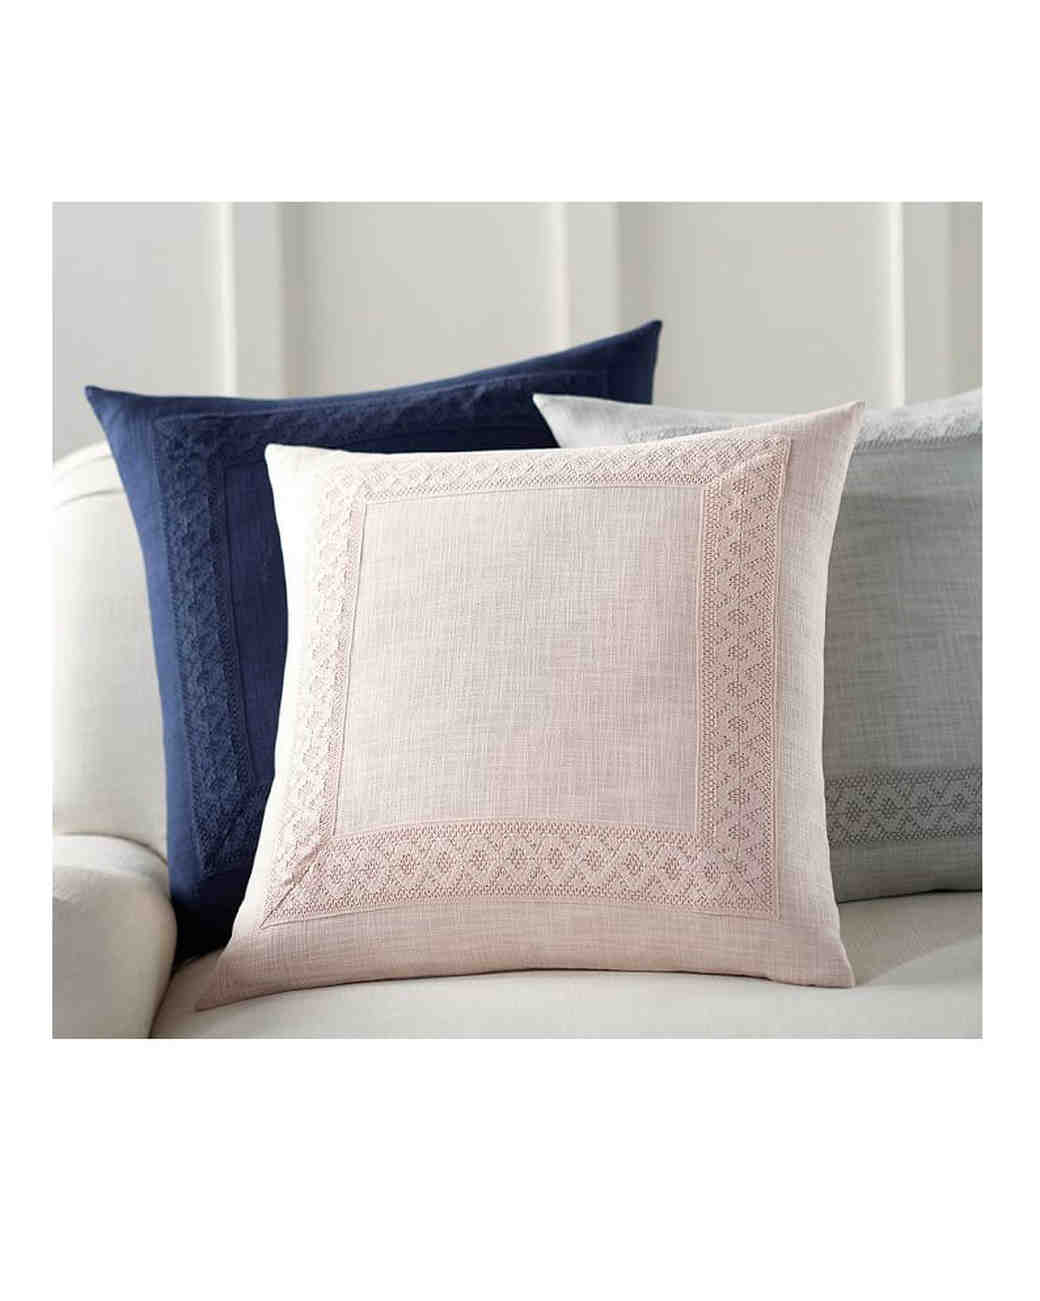 lace anniversary gifts pillows pottery barn